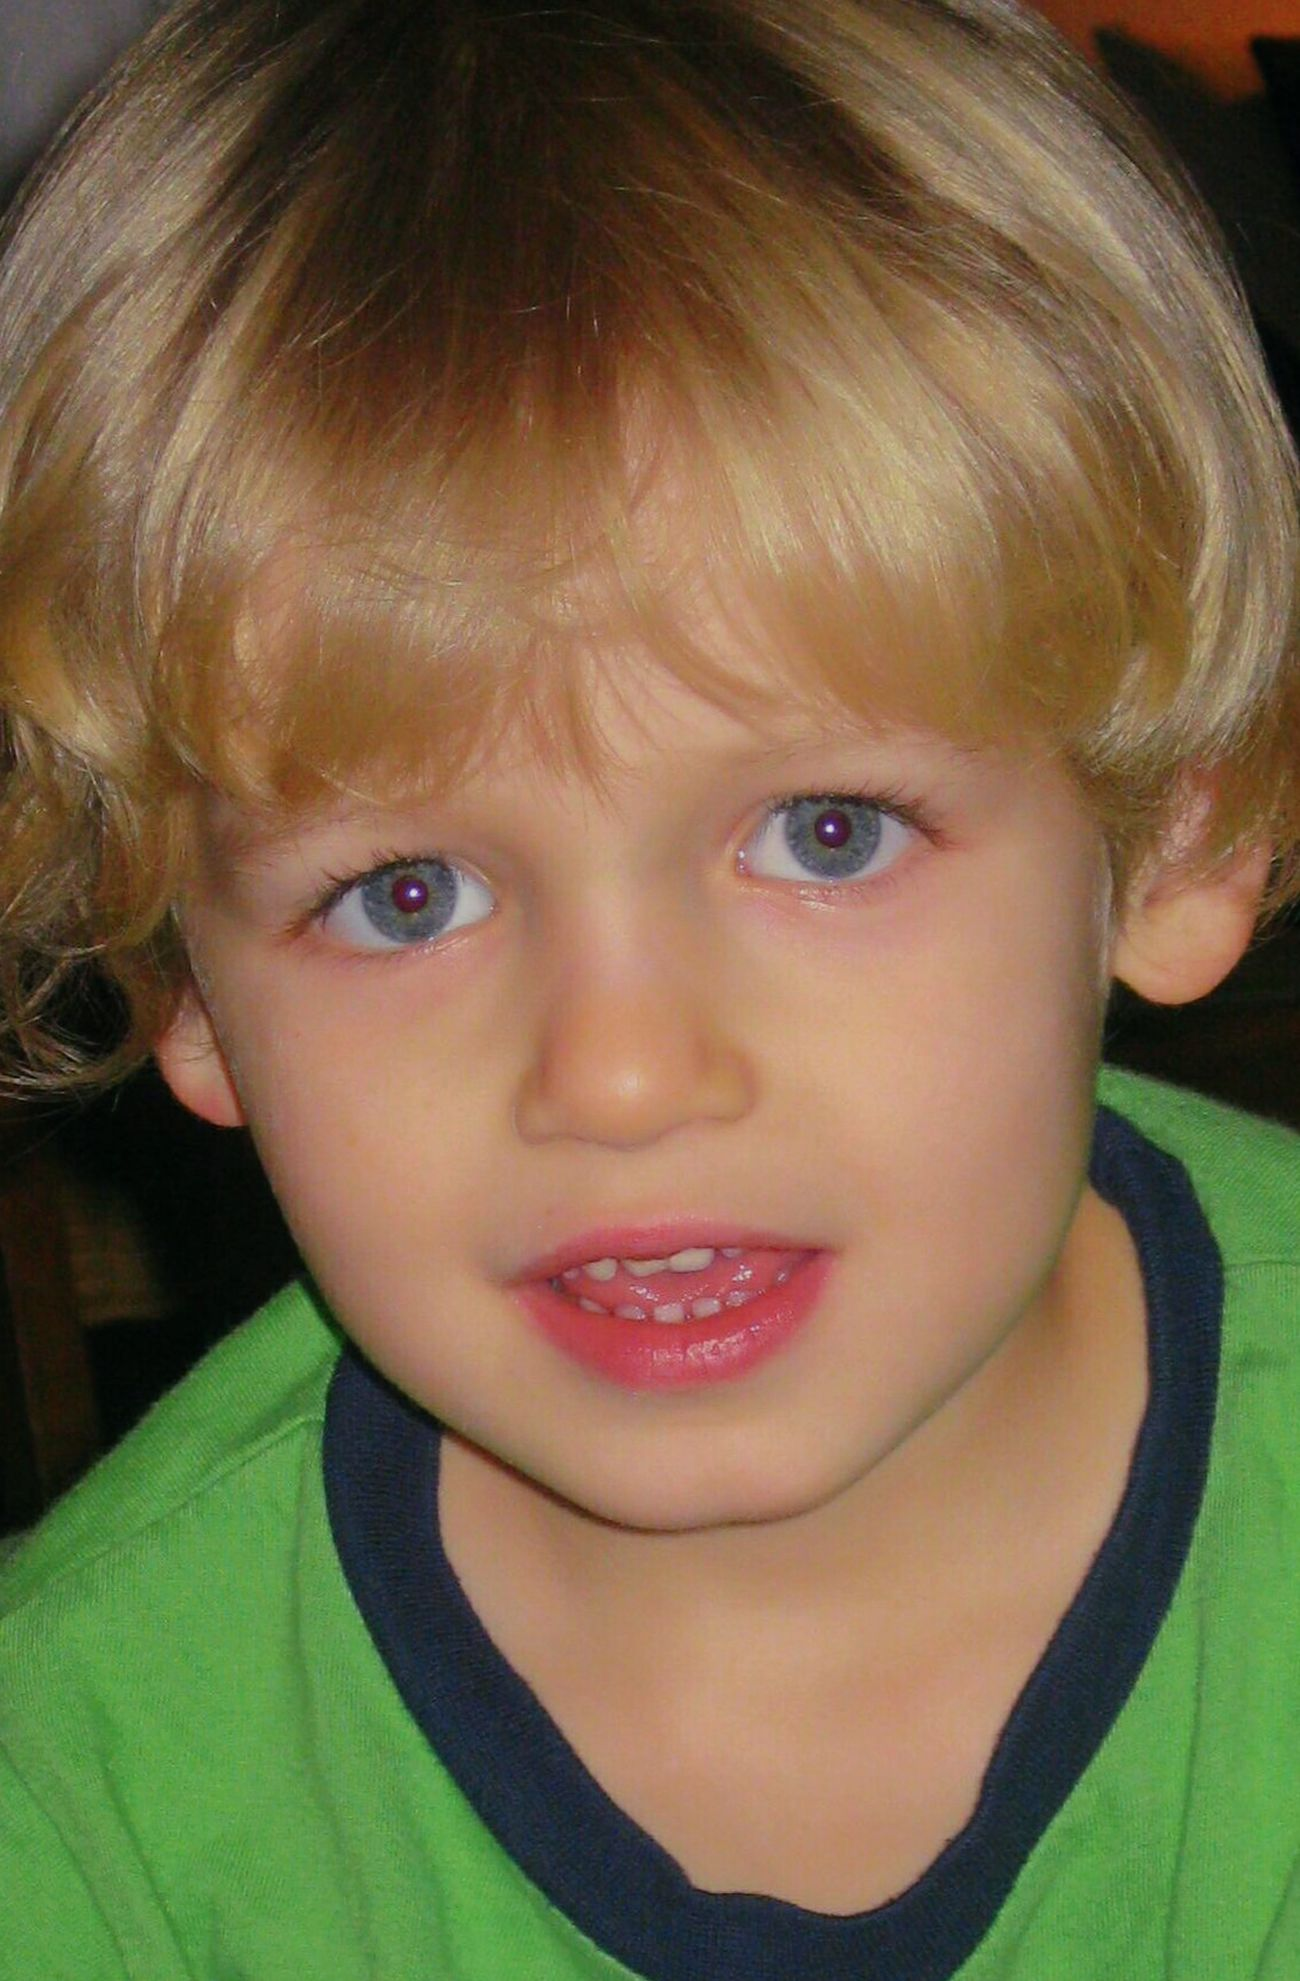 Levin Looking At Camera Portrait Child Childhood Front View Headshot One Person Human Face Human Body Part Children Only Human Eye Close-up One Boy Only Blond Hair Indoors  People Protruding Day Adult